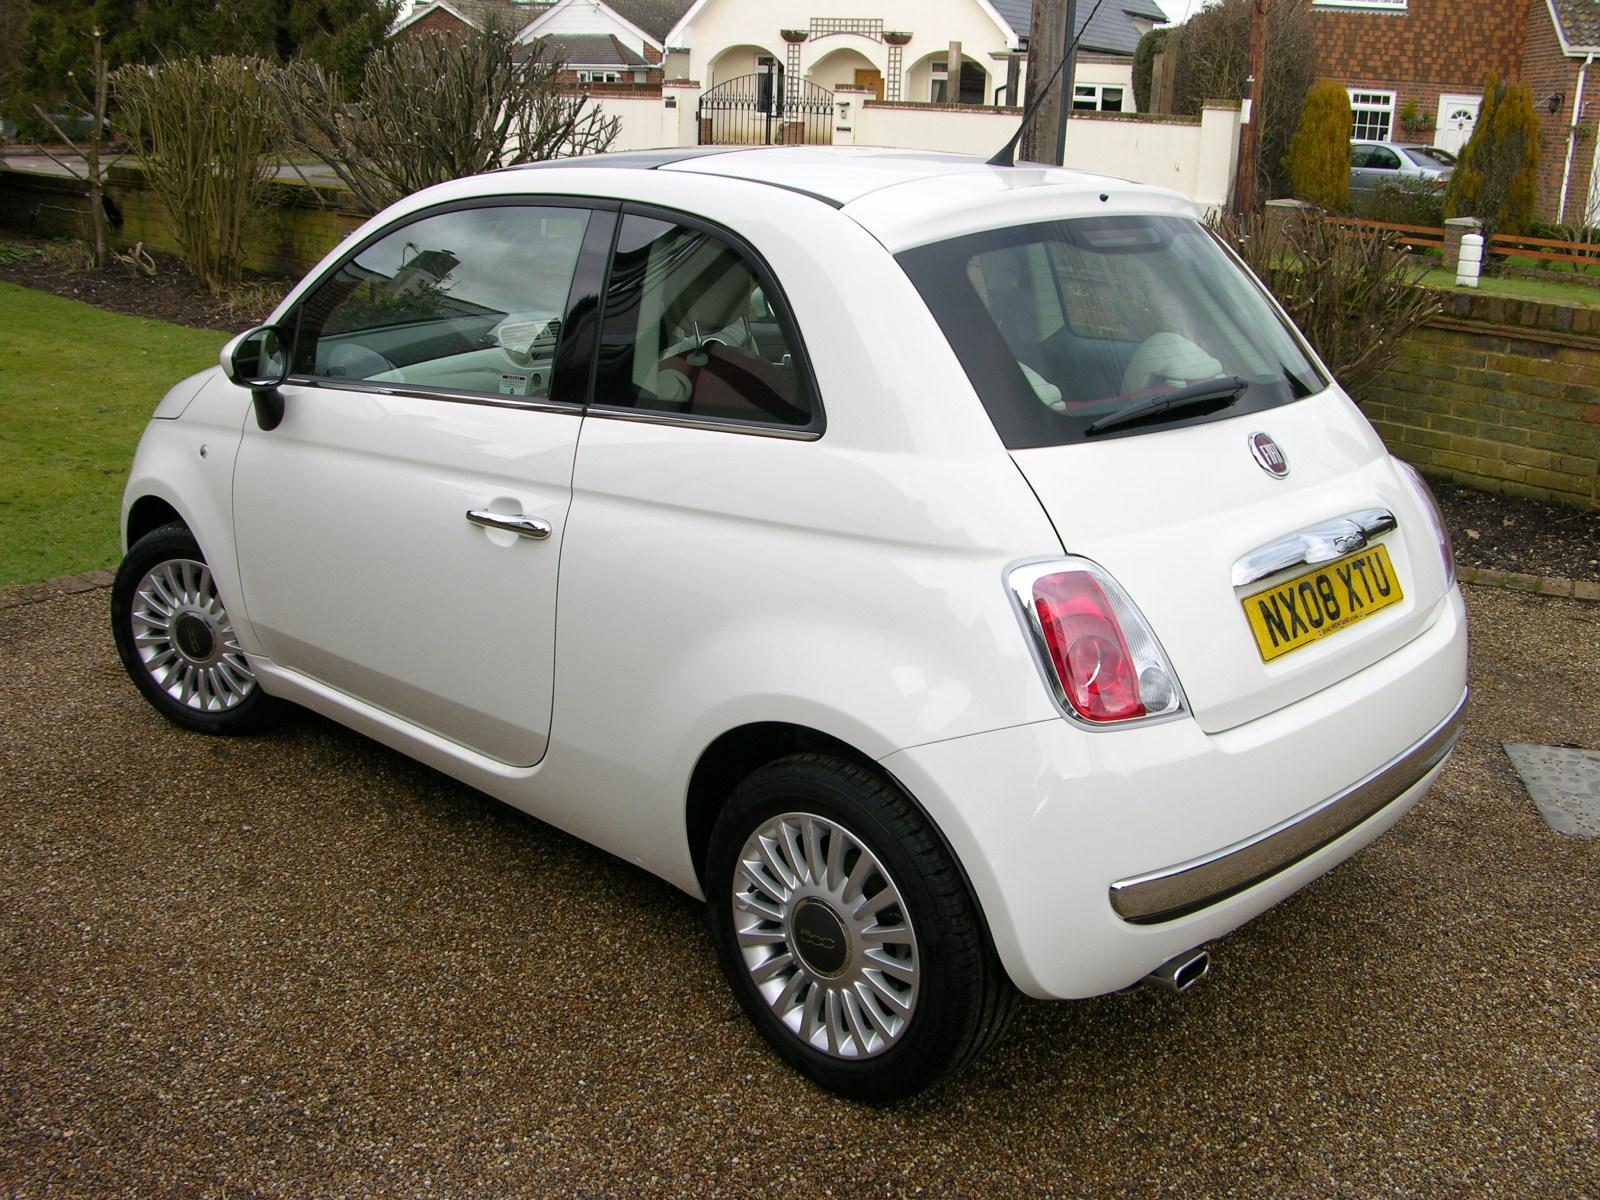 file 2008 fiat 500 1 4 lounge flickr the car spy 13 jpg. Black Bedroom Furniture Sets. Home Design Ideas